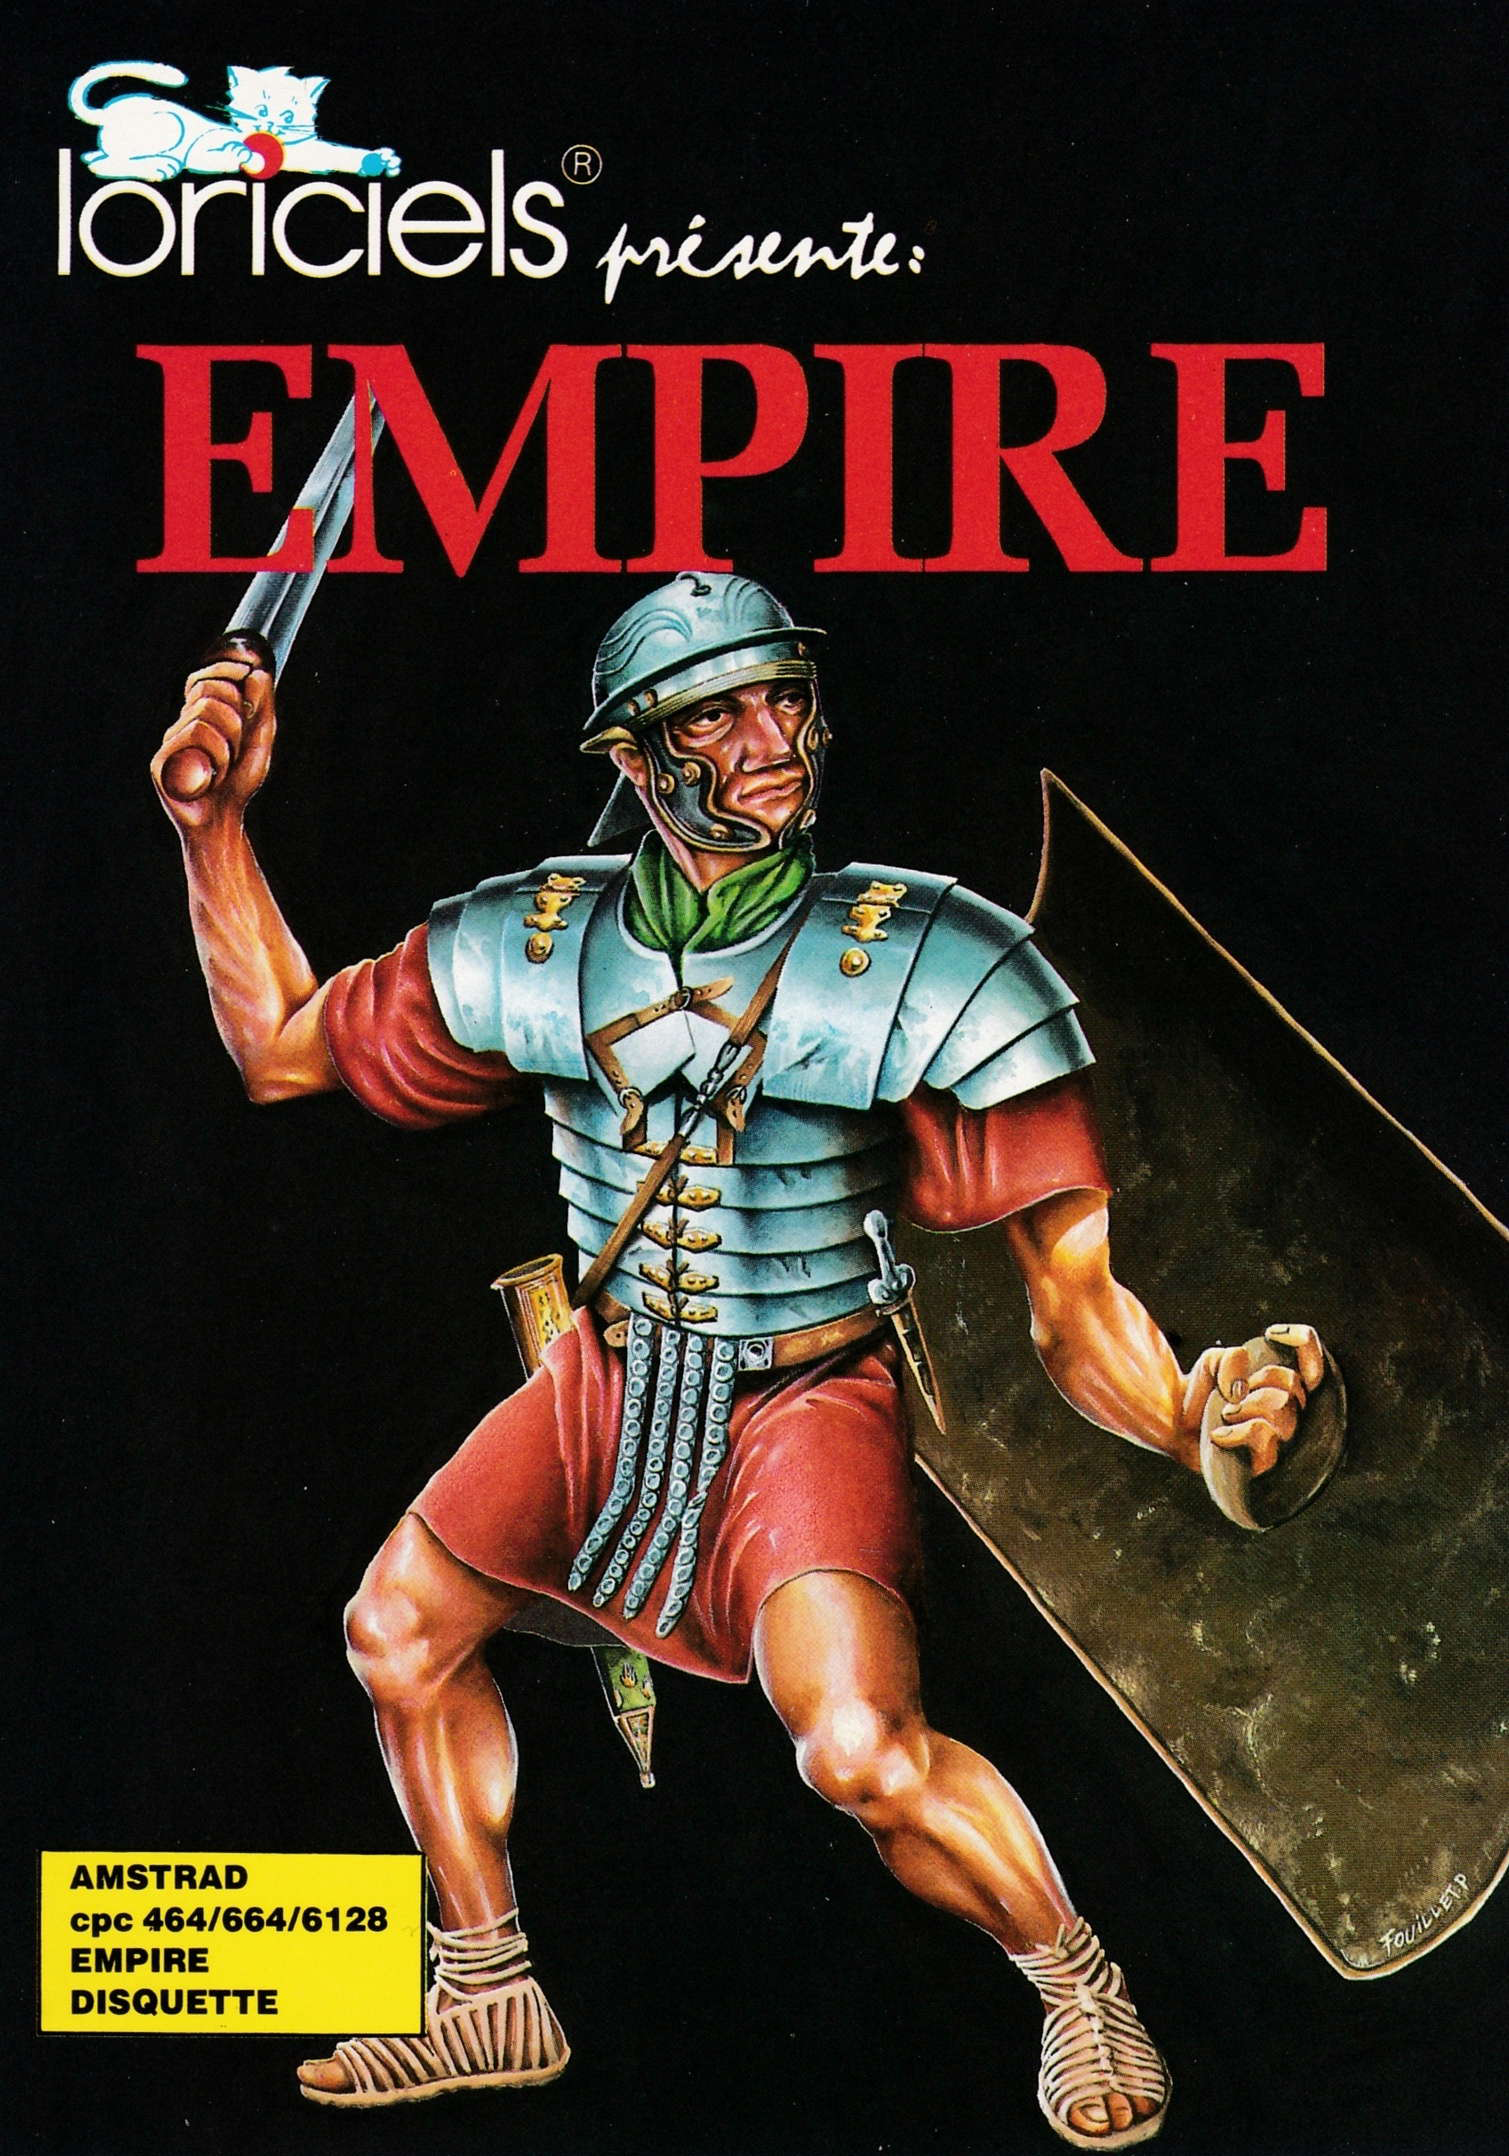 cover of the Amstrad CPC game Empire  by GameBase CPC